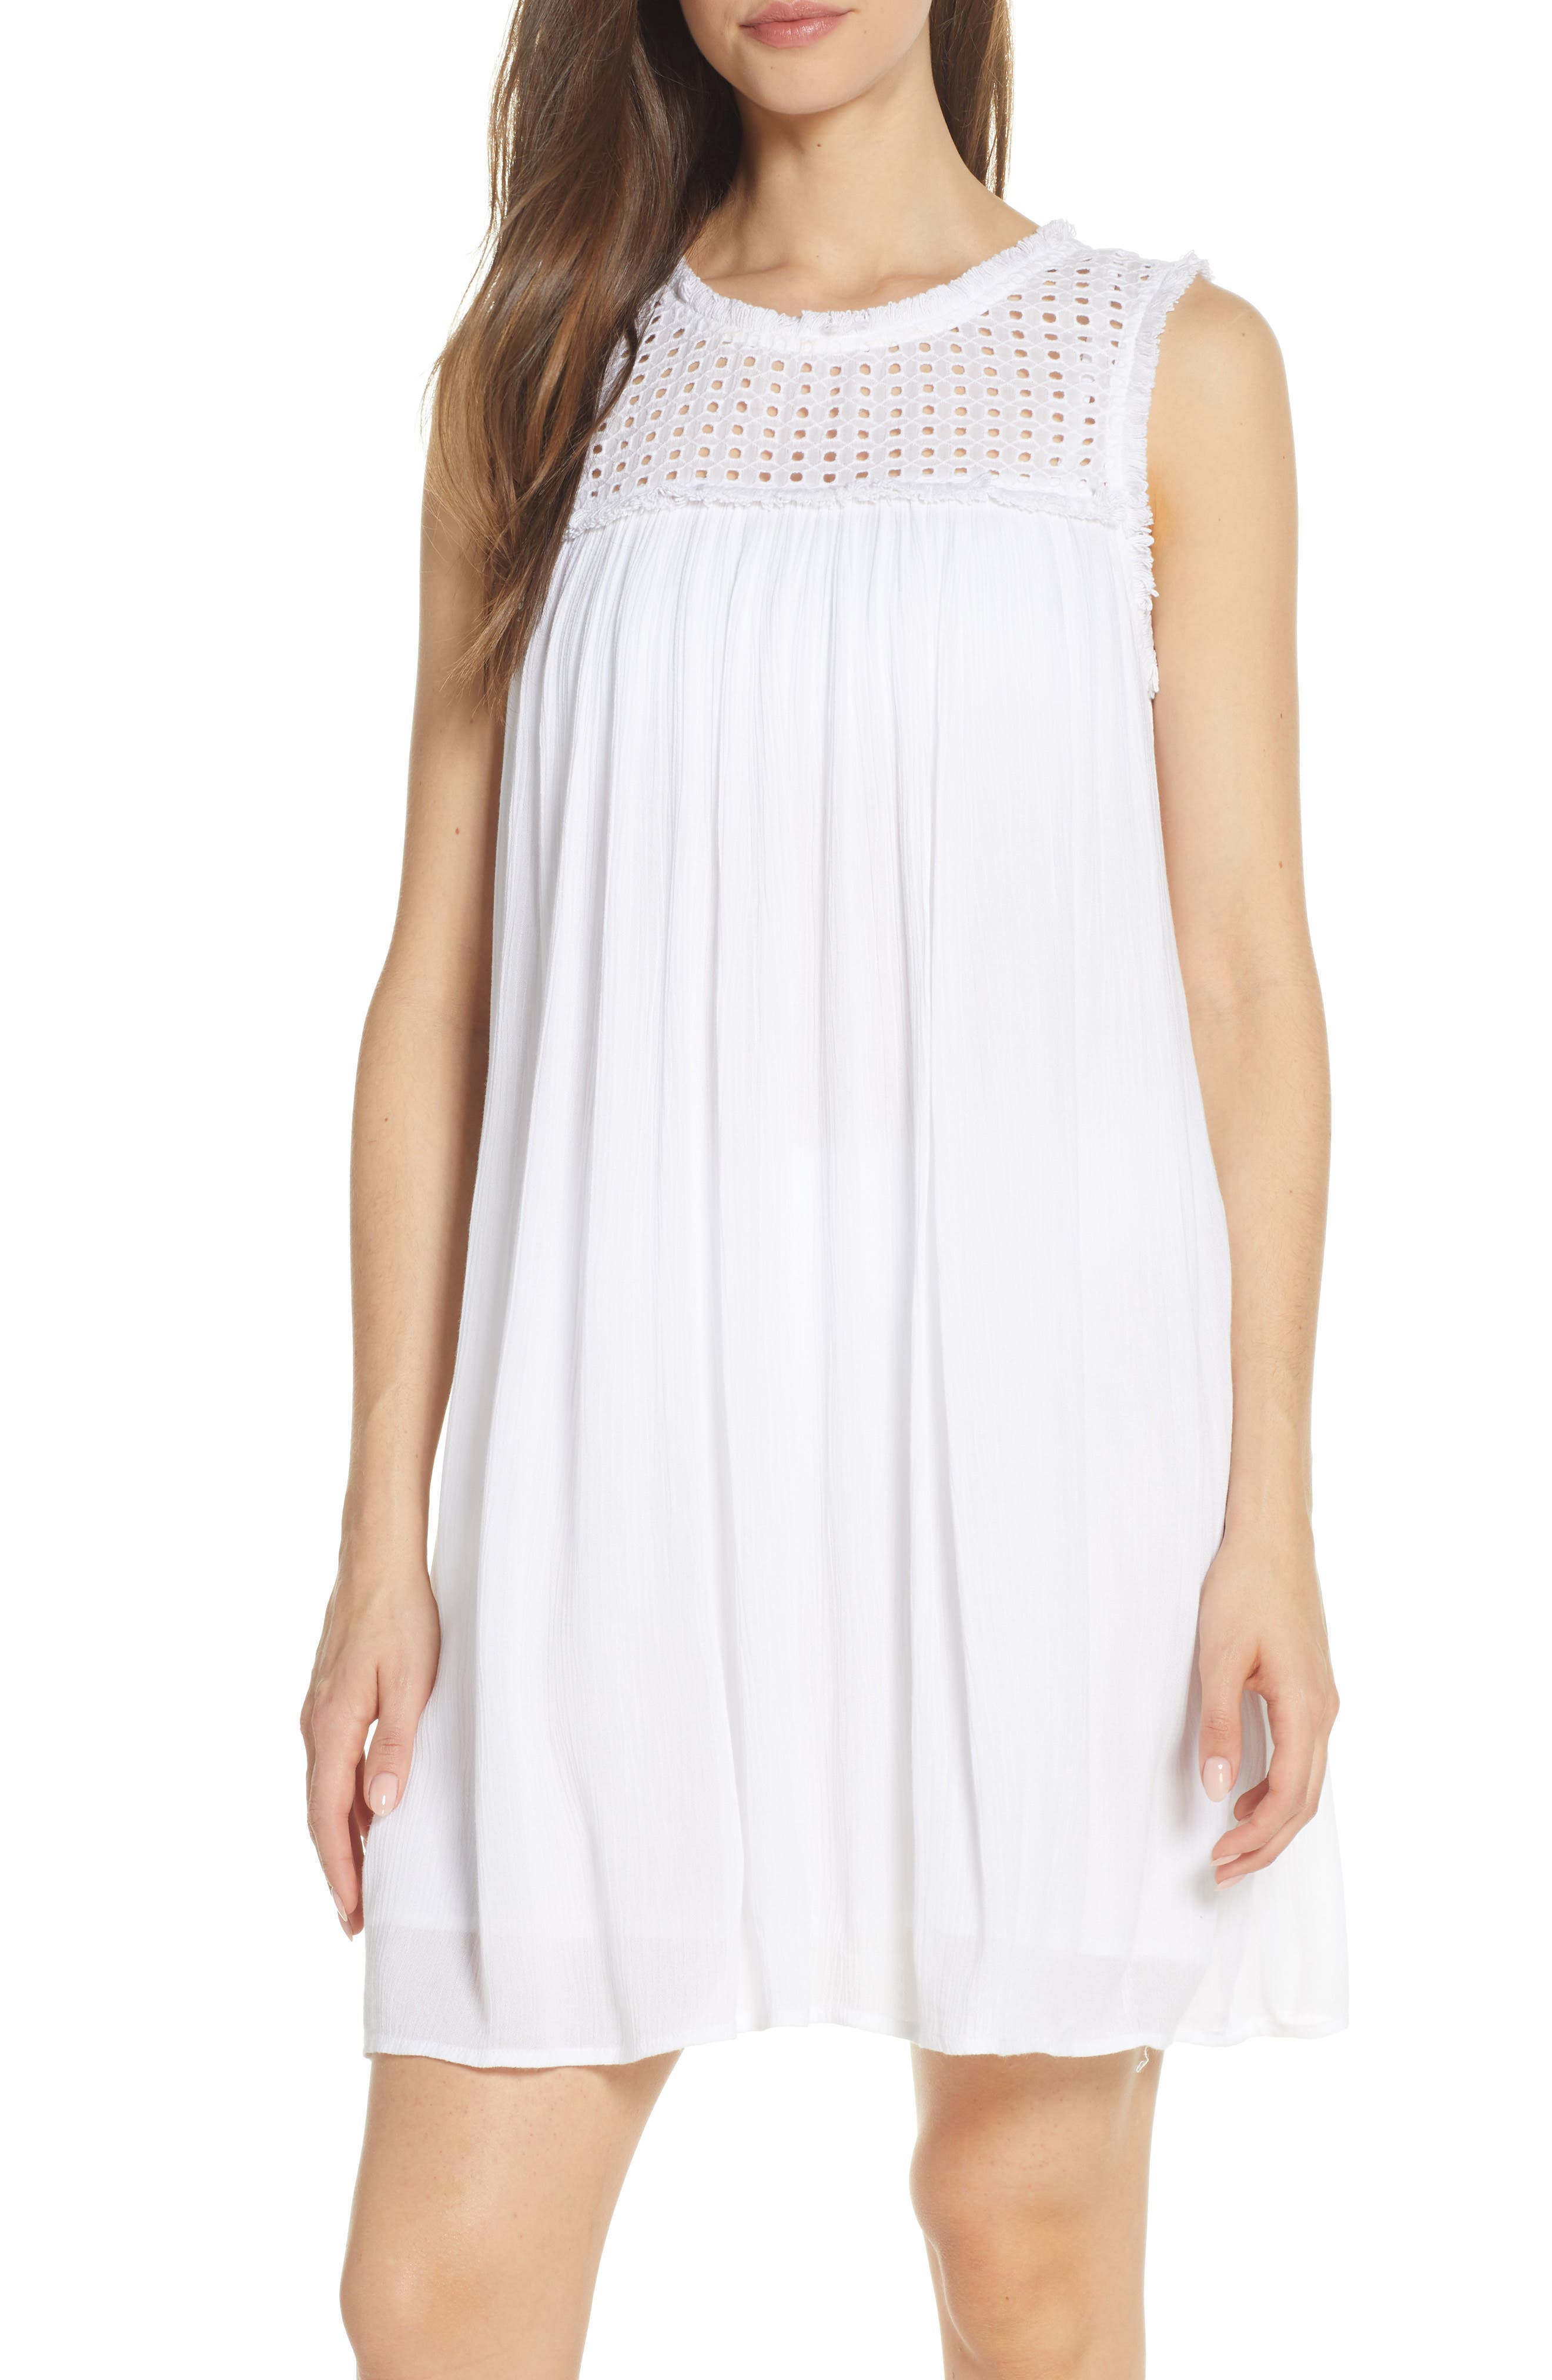 Tommy Bahama Eyelet Yoke Cover-Up Dress, White